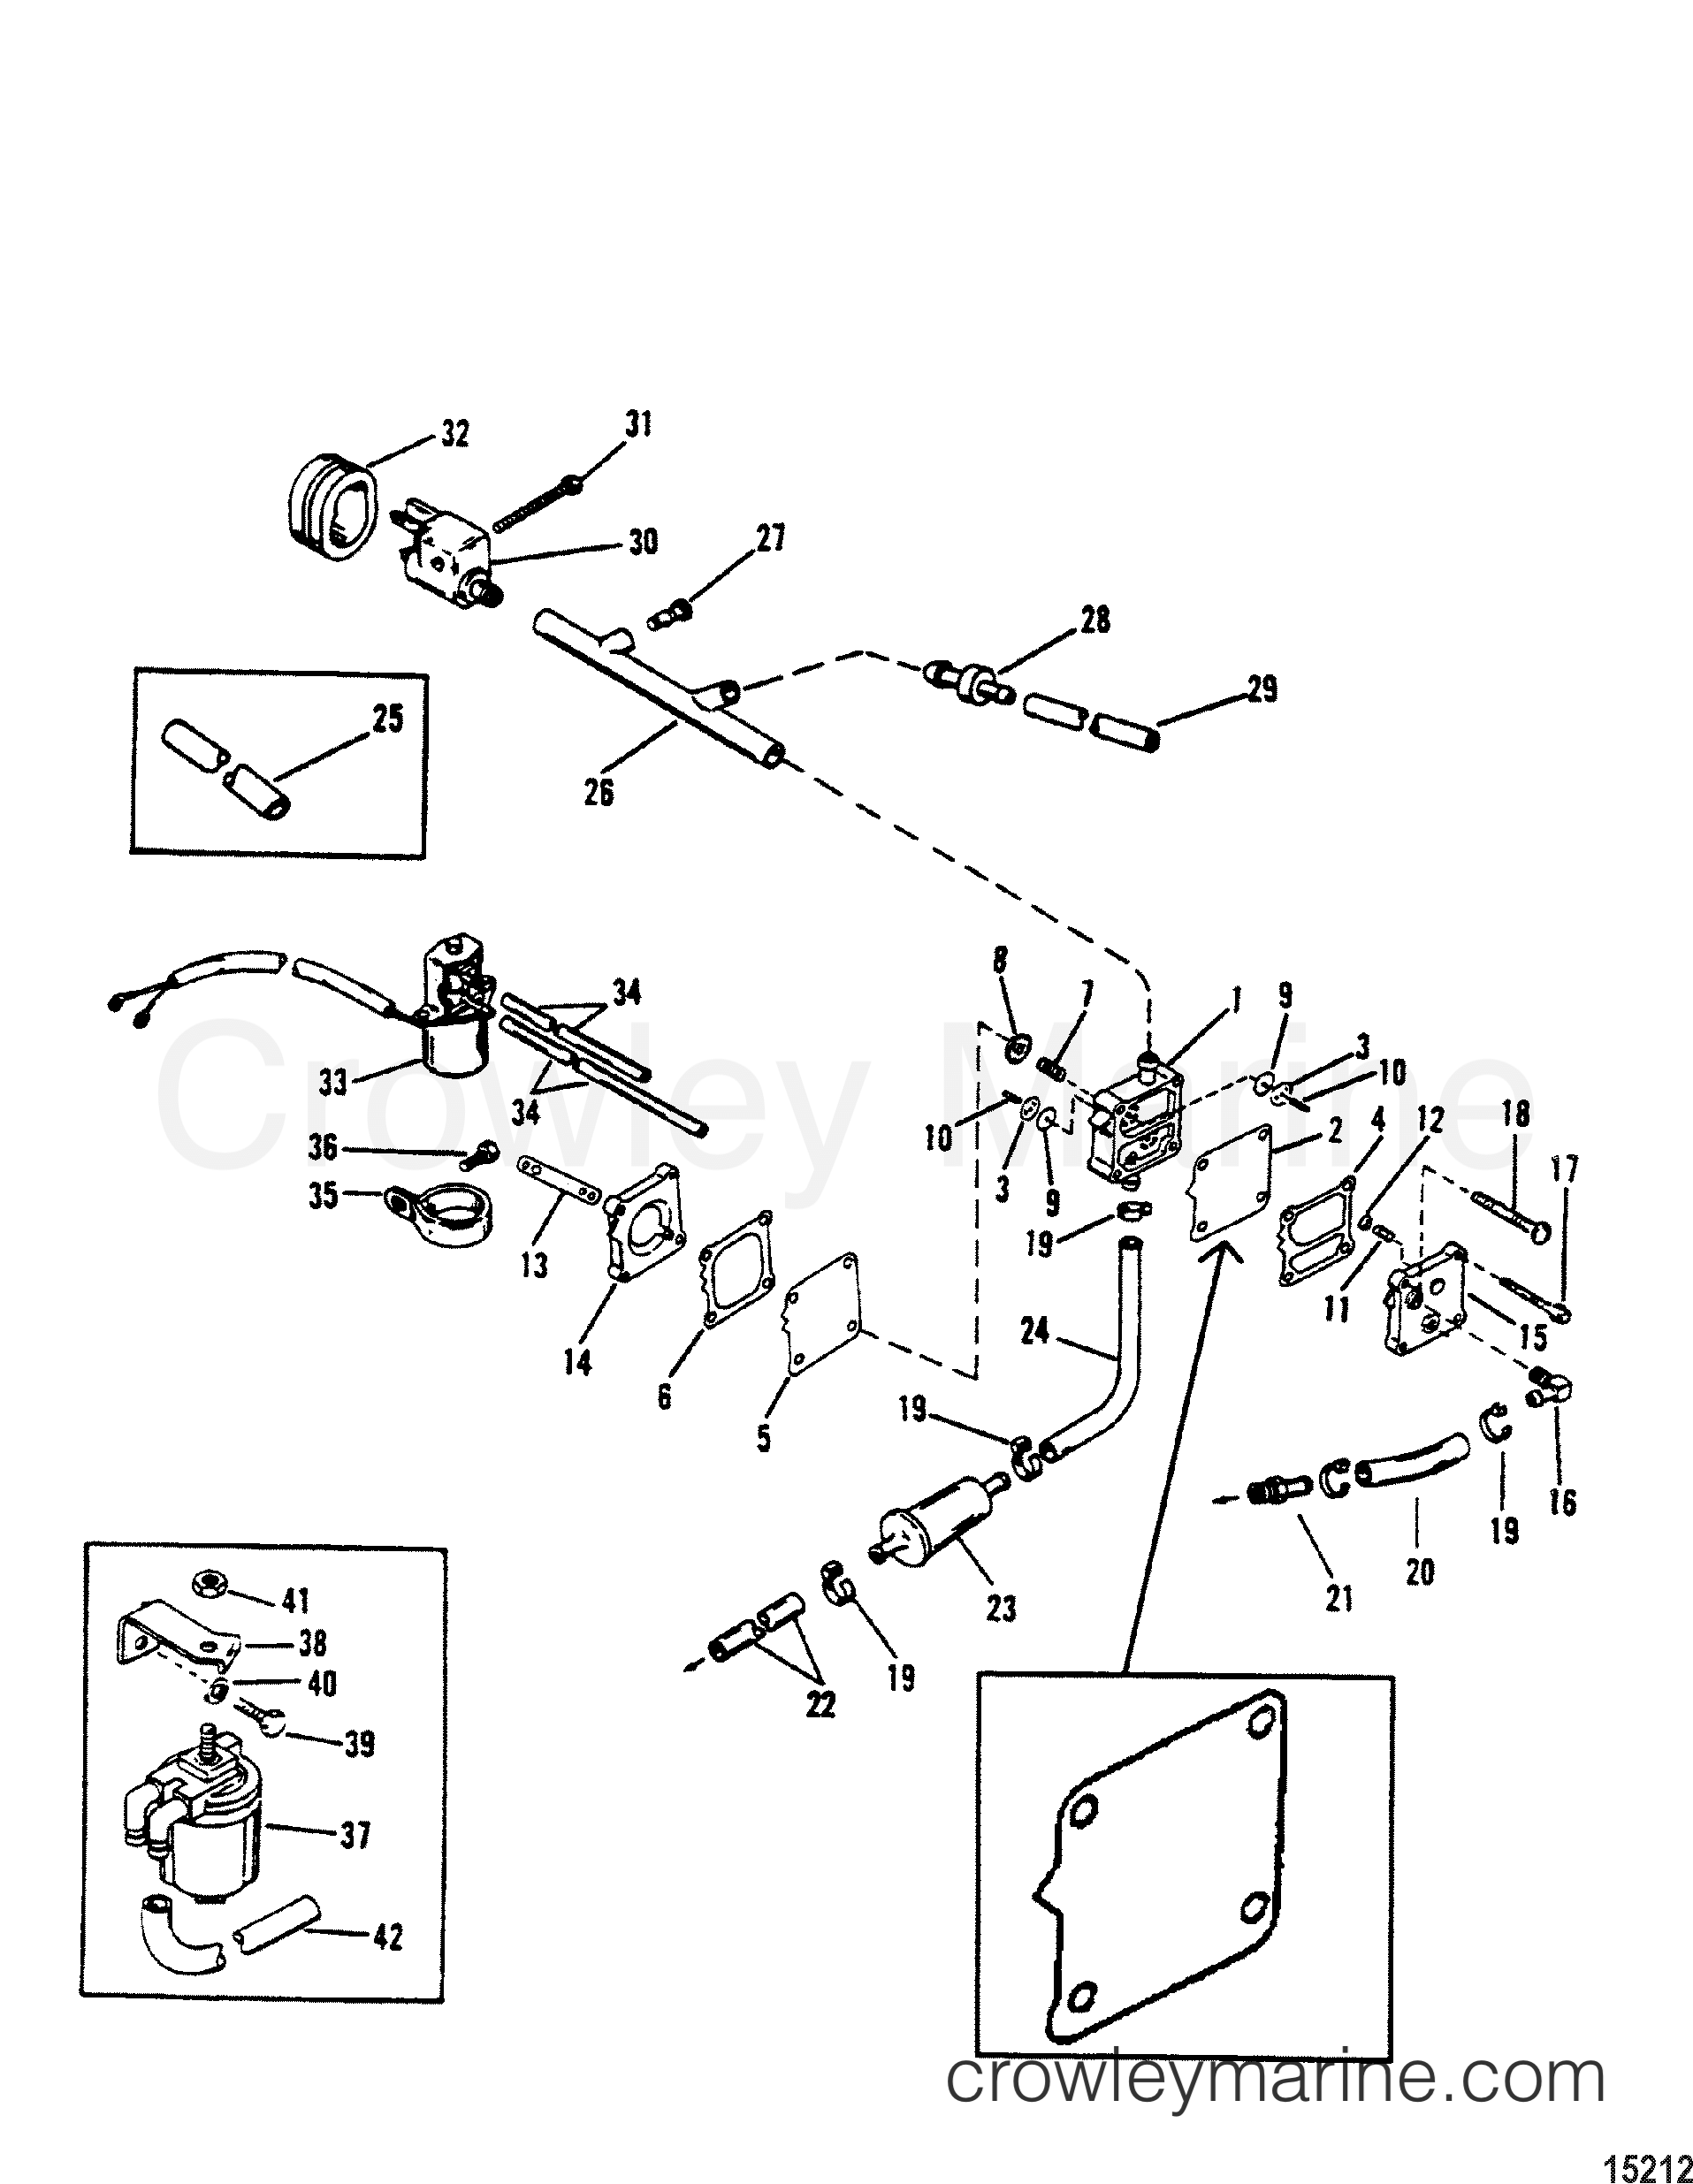 fuel pump use with inline check valve